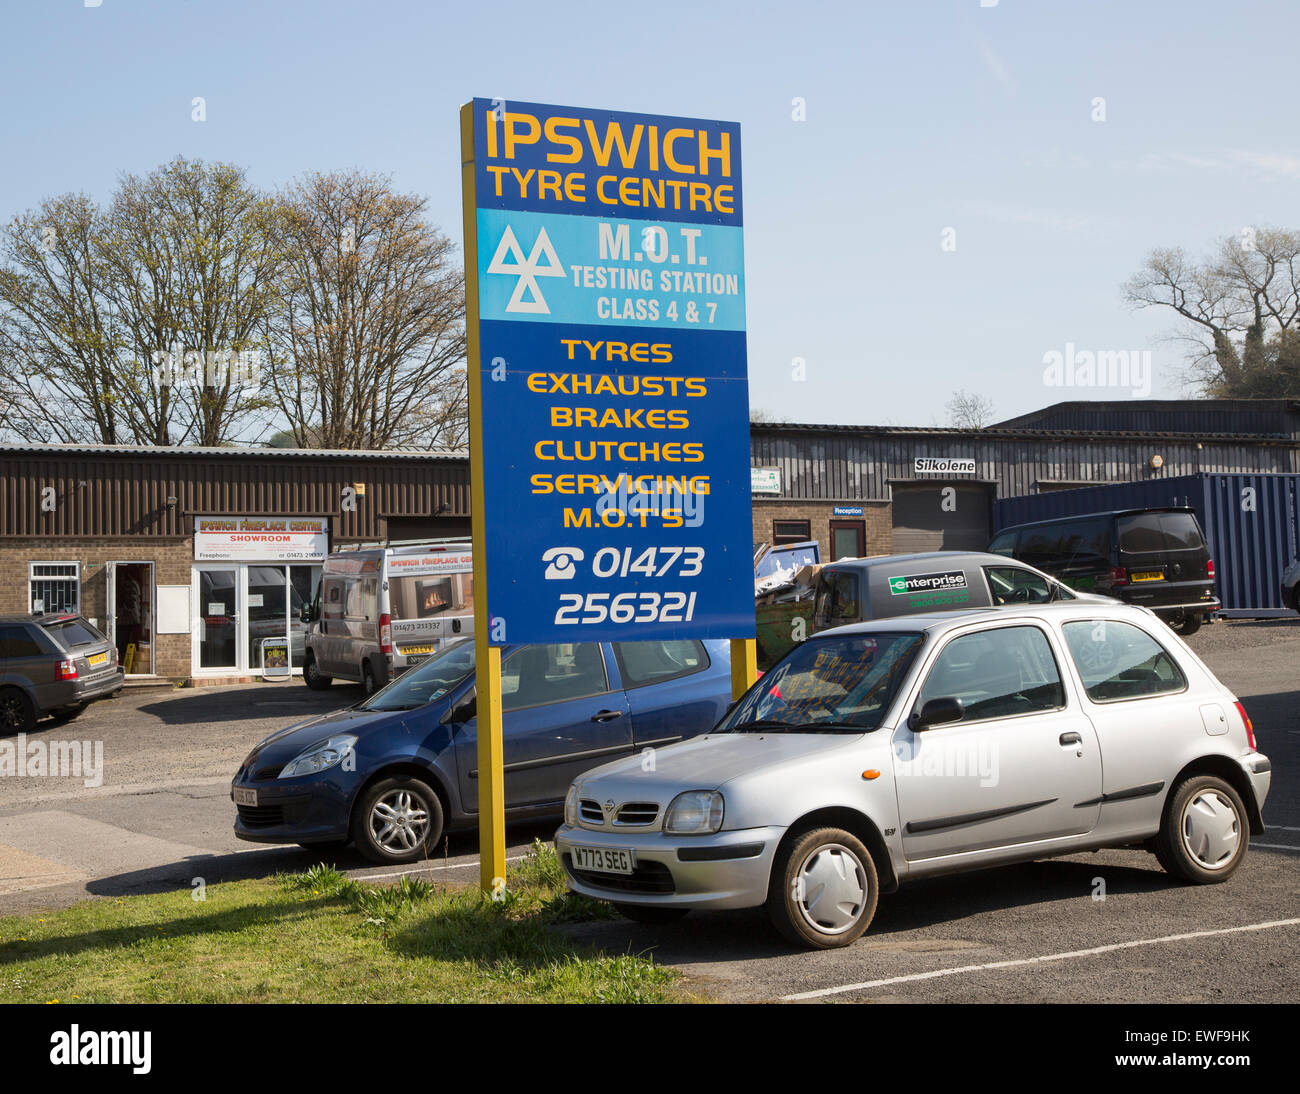 Tyre Centre and MOT testing centre, Ipswich, Suffolk, England, UK - Stock Image